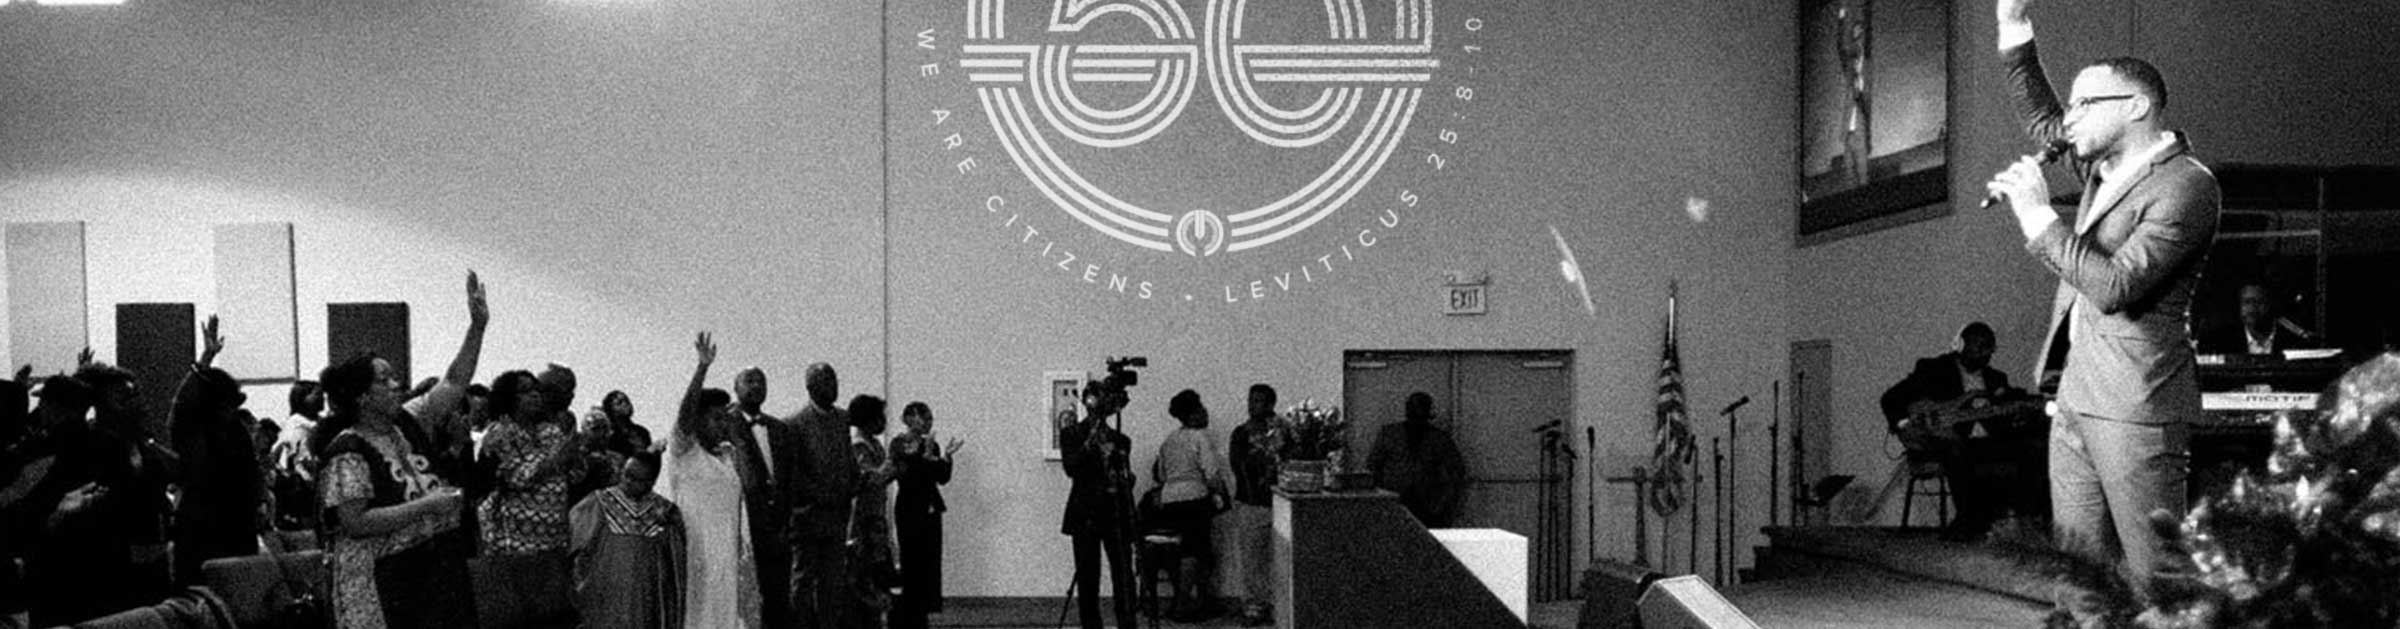 MCC-50th-Year-Logo-8b-branded-event